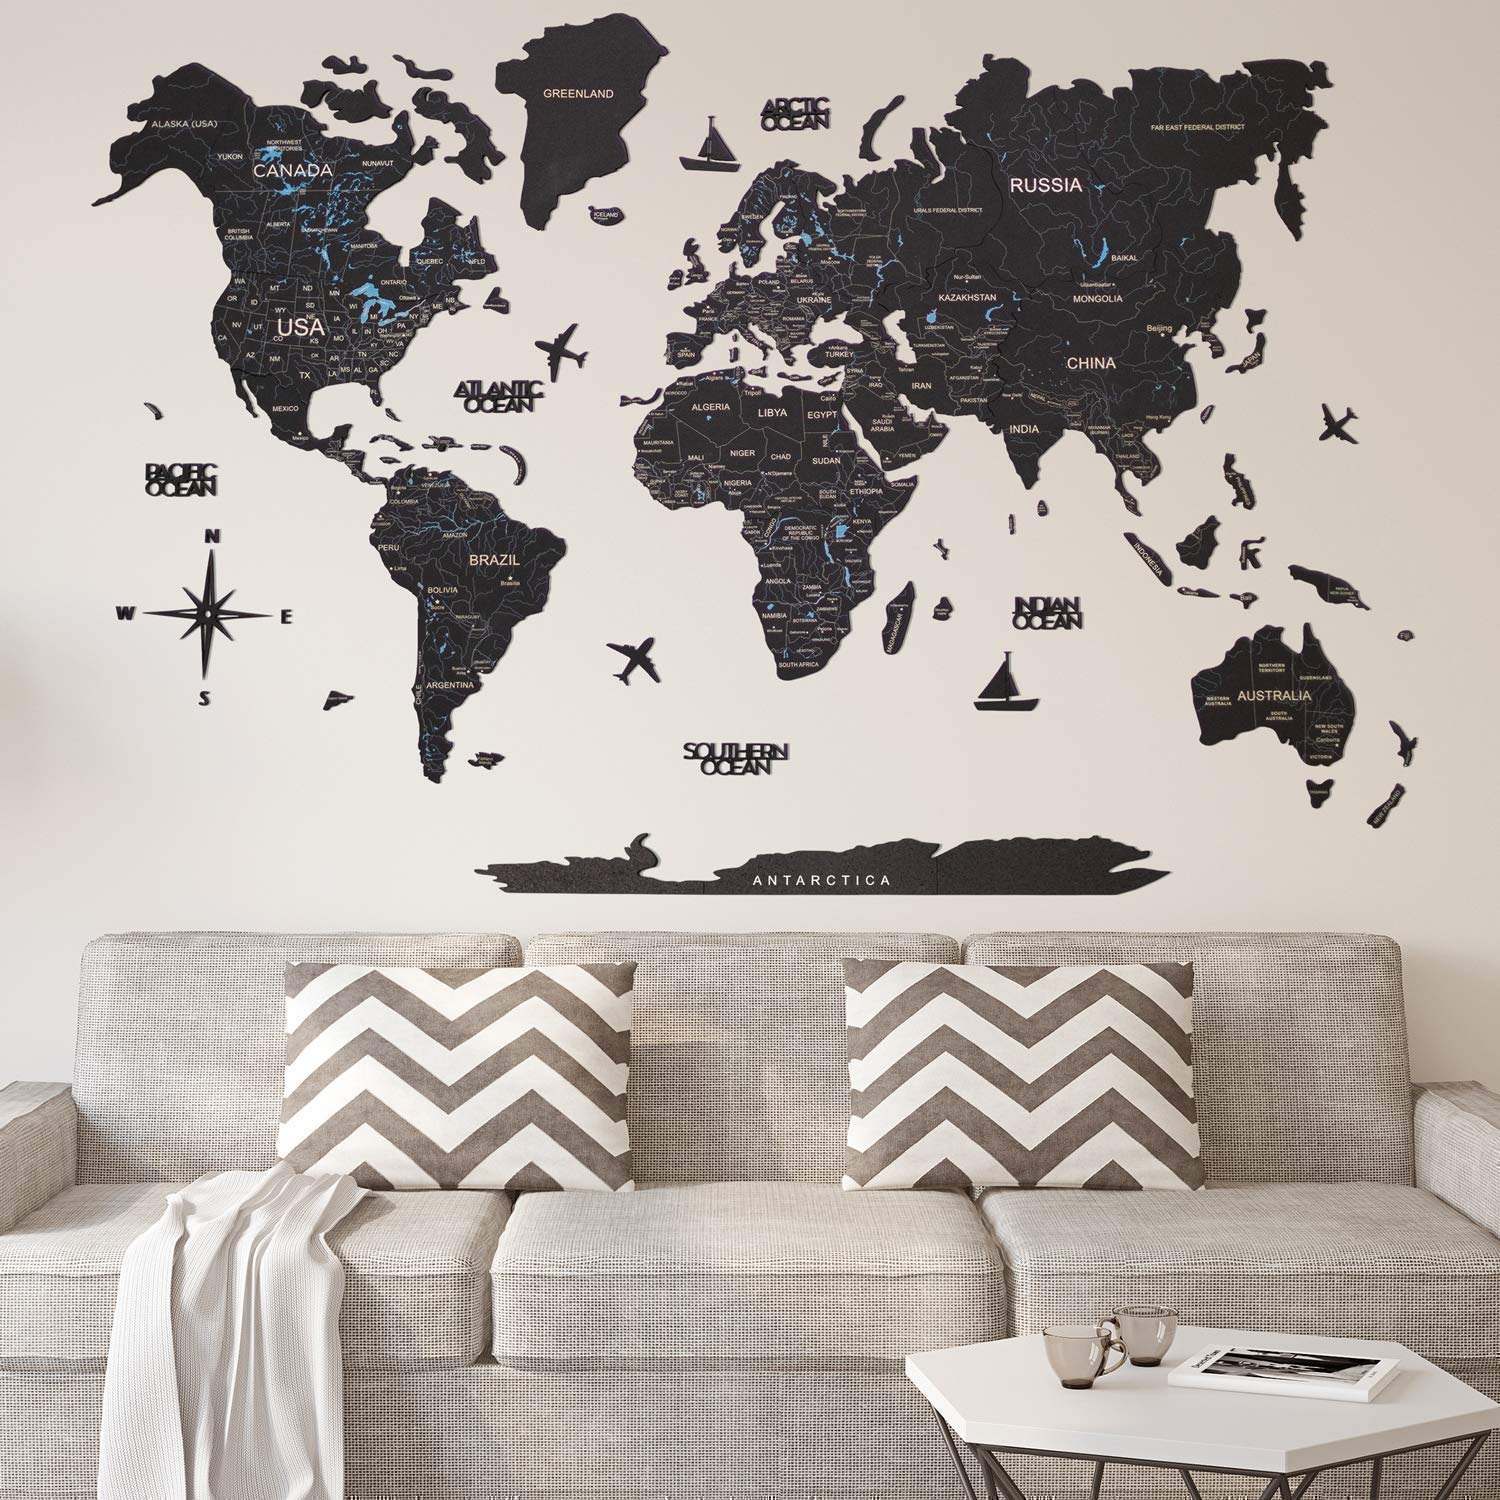 Black Cork World Map Wall Art Large Wall Decor - World Travel Map ALL Sizes (M L XL) Any Occasion Gift Idea - Wall Art For Home & Kitchen or Office